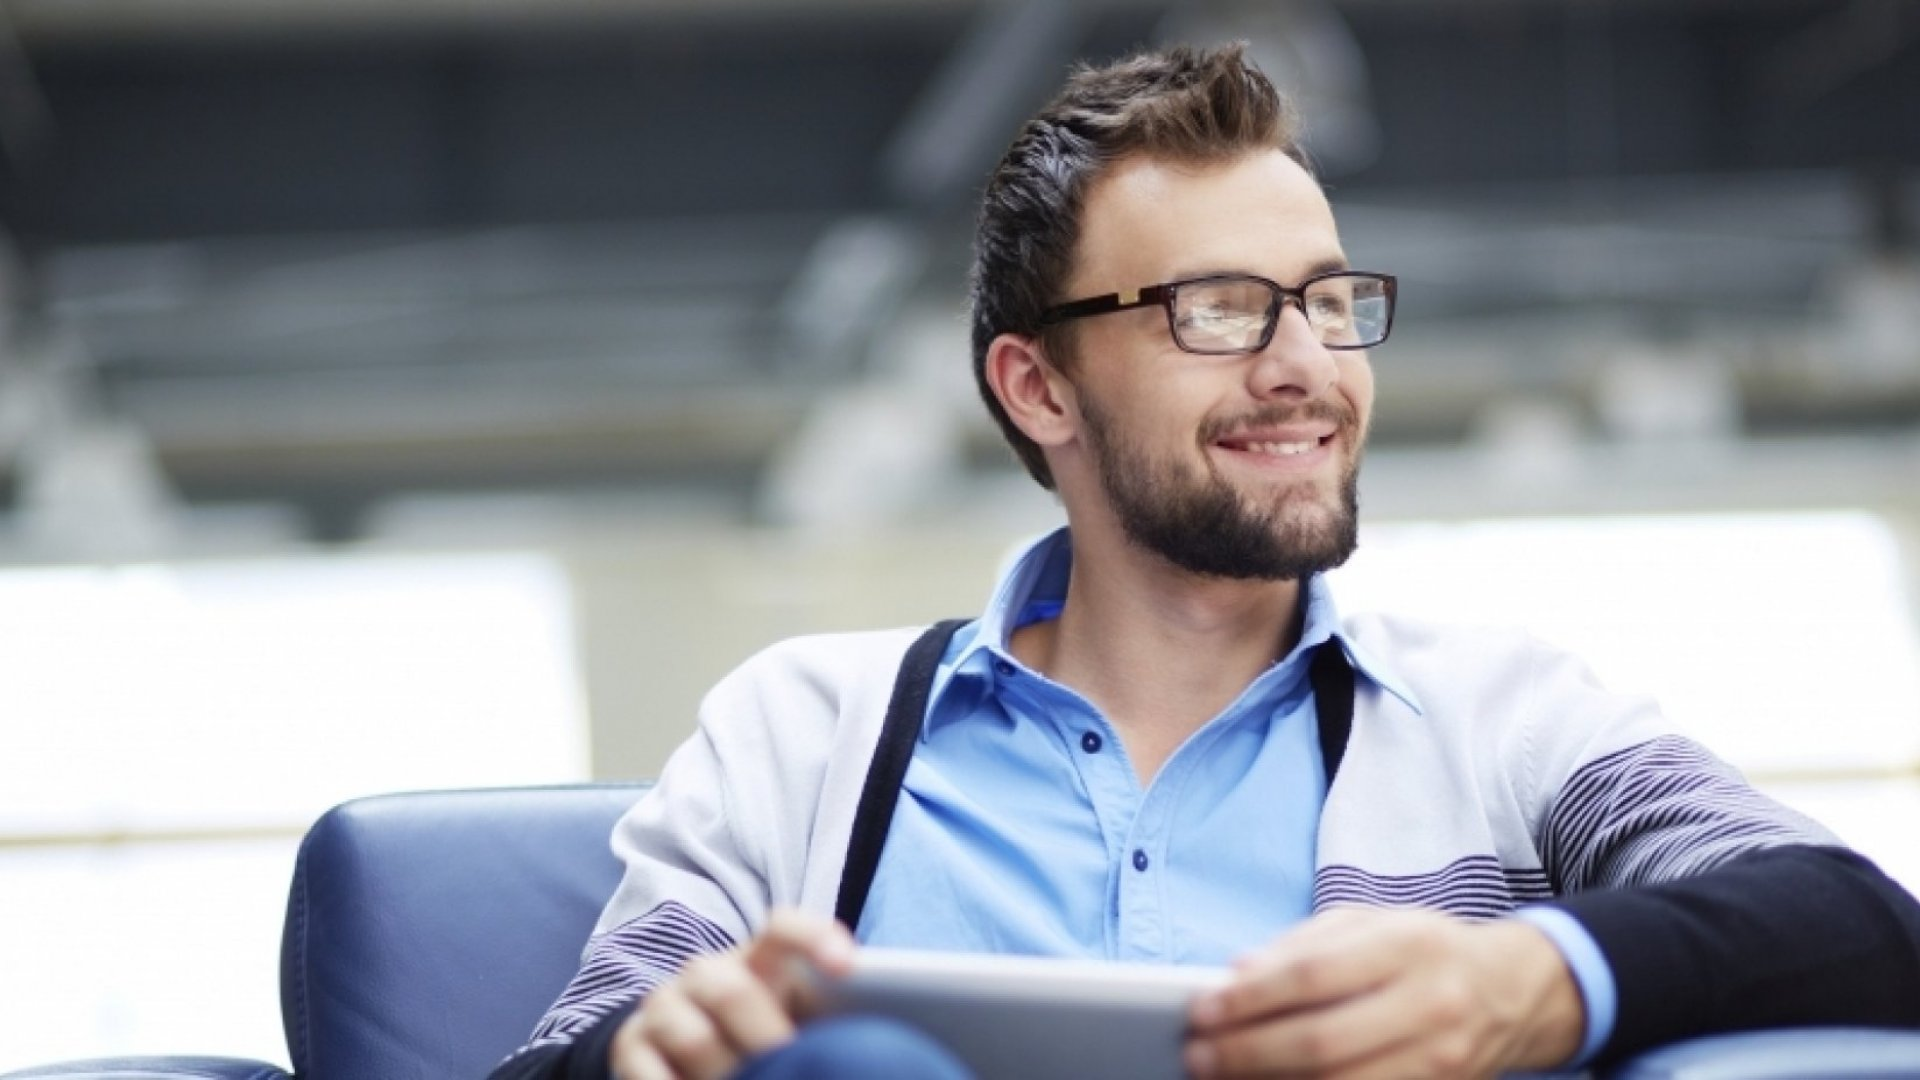 7 Reasons for Reducing Your Company's Reliance on You